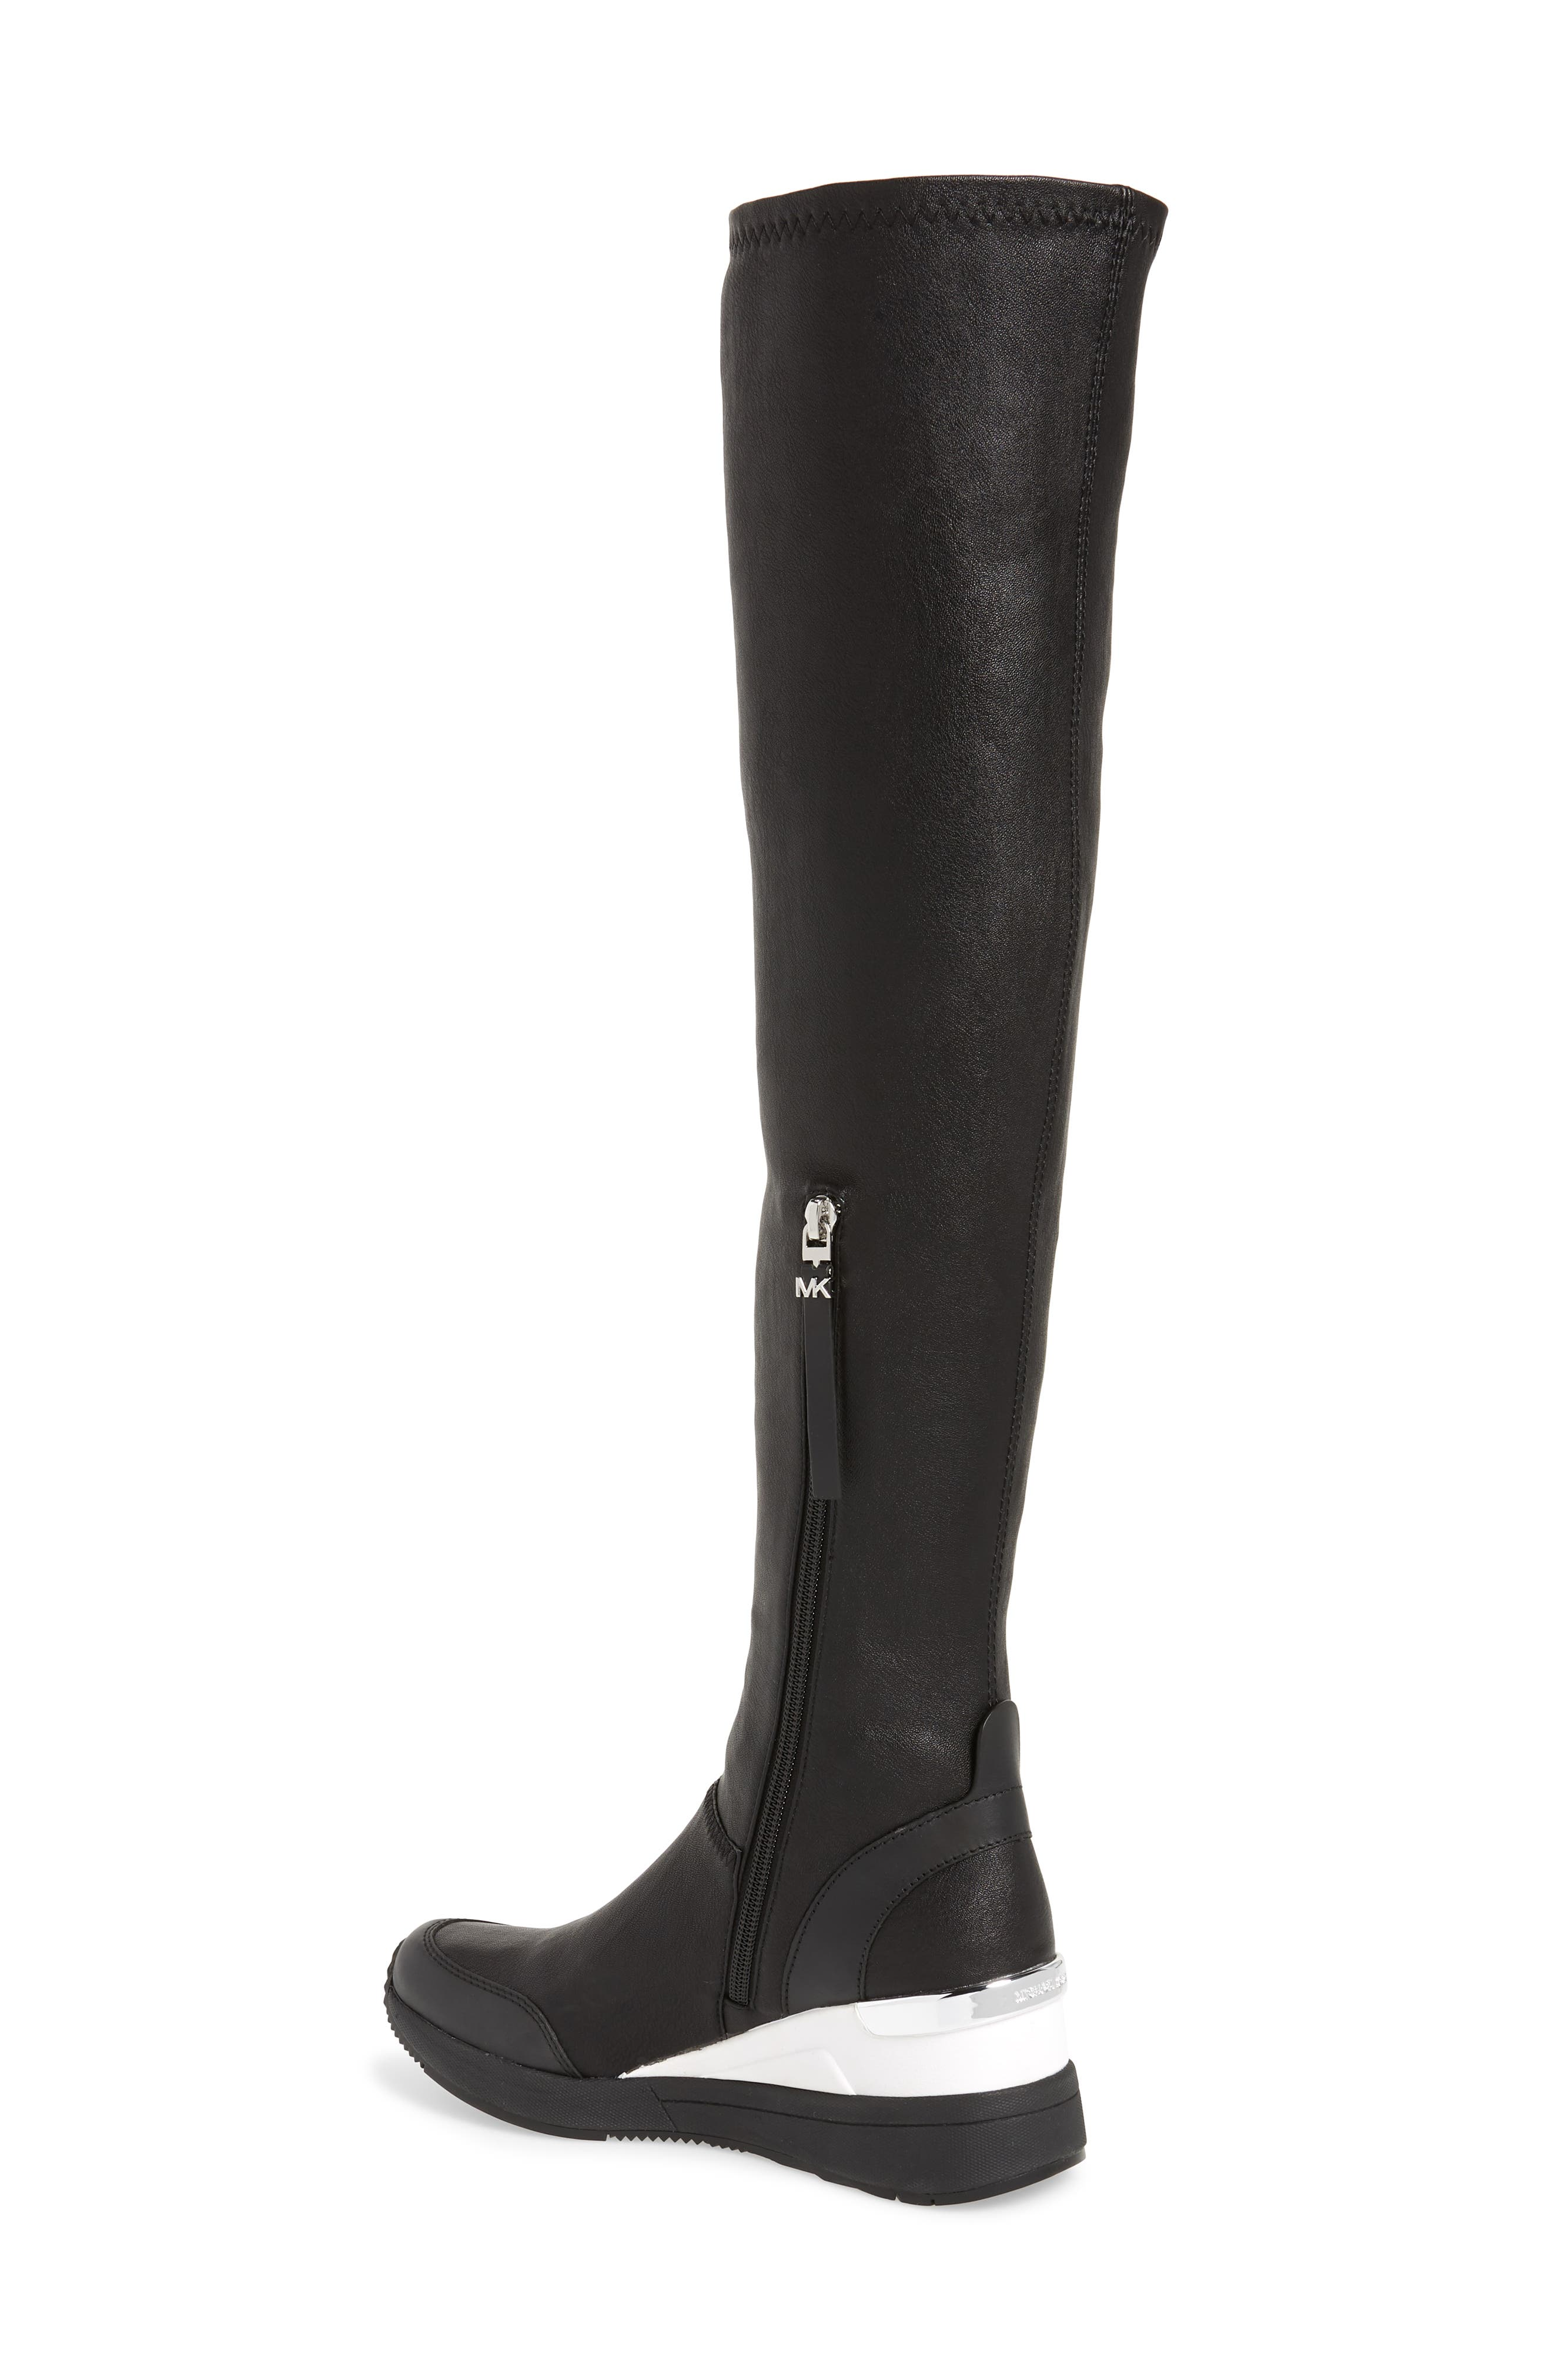 Tipton Wedge Over the Knee Rain Boot,                             Alternate thumbnail 2, color,                             BLACK FAUX LEATHER